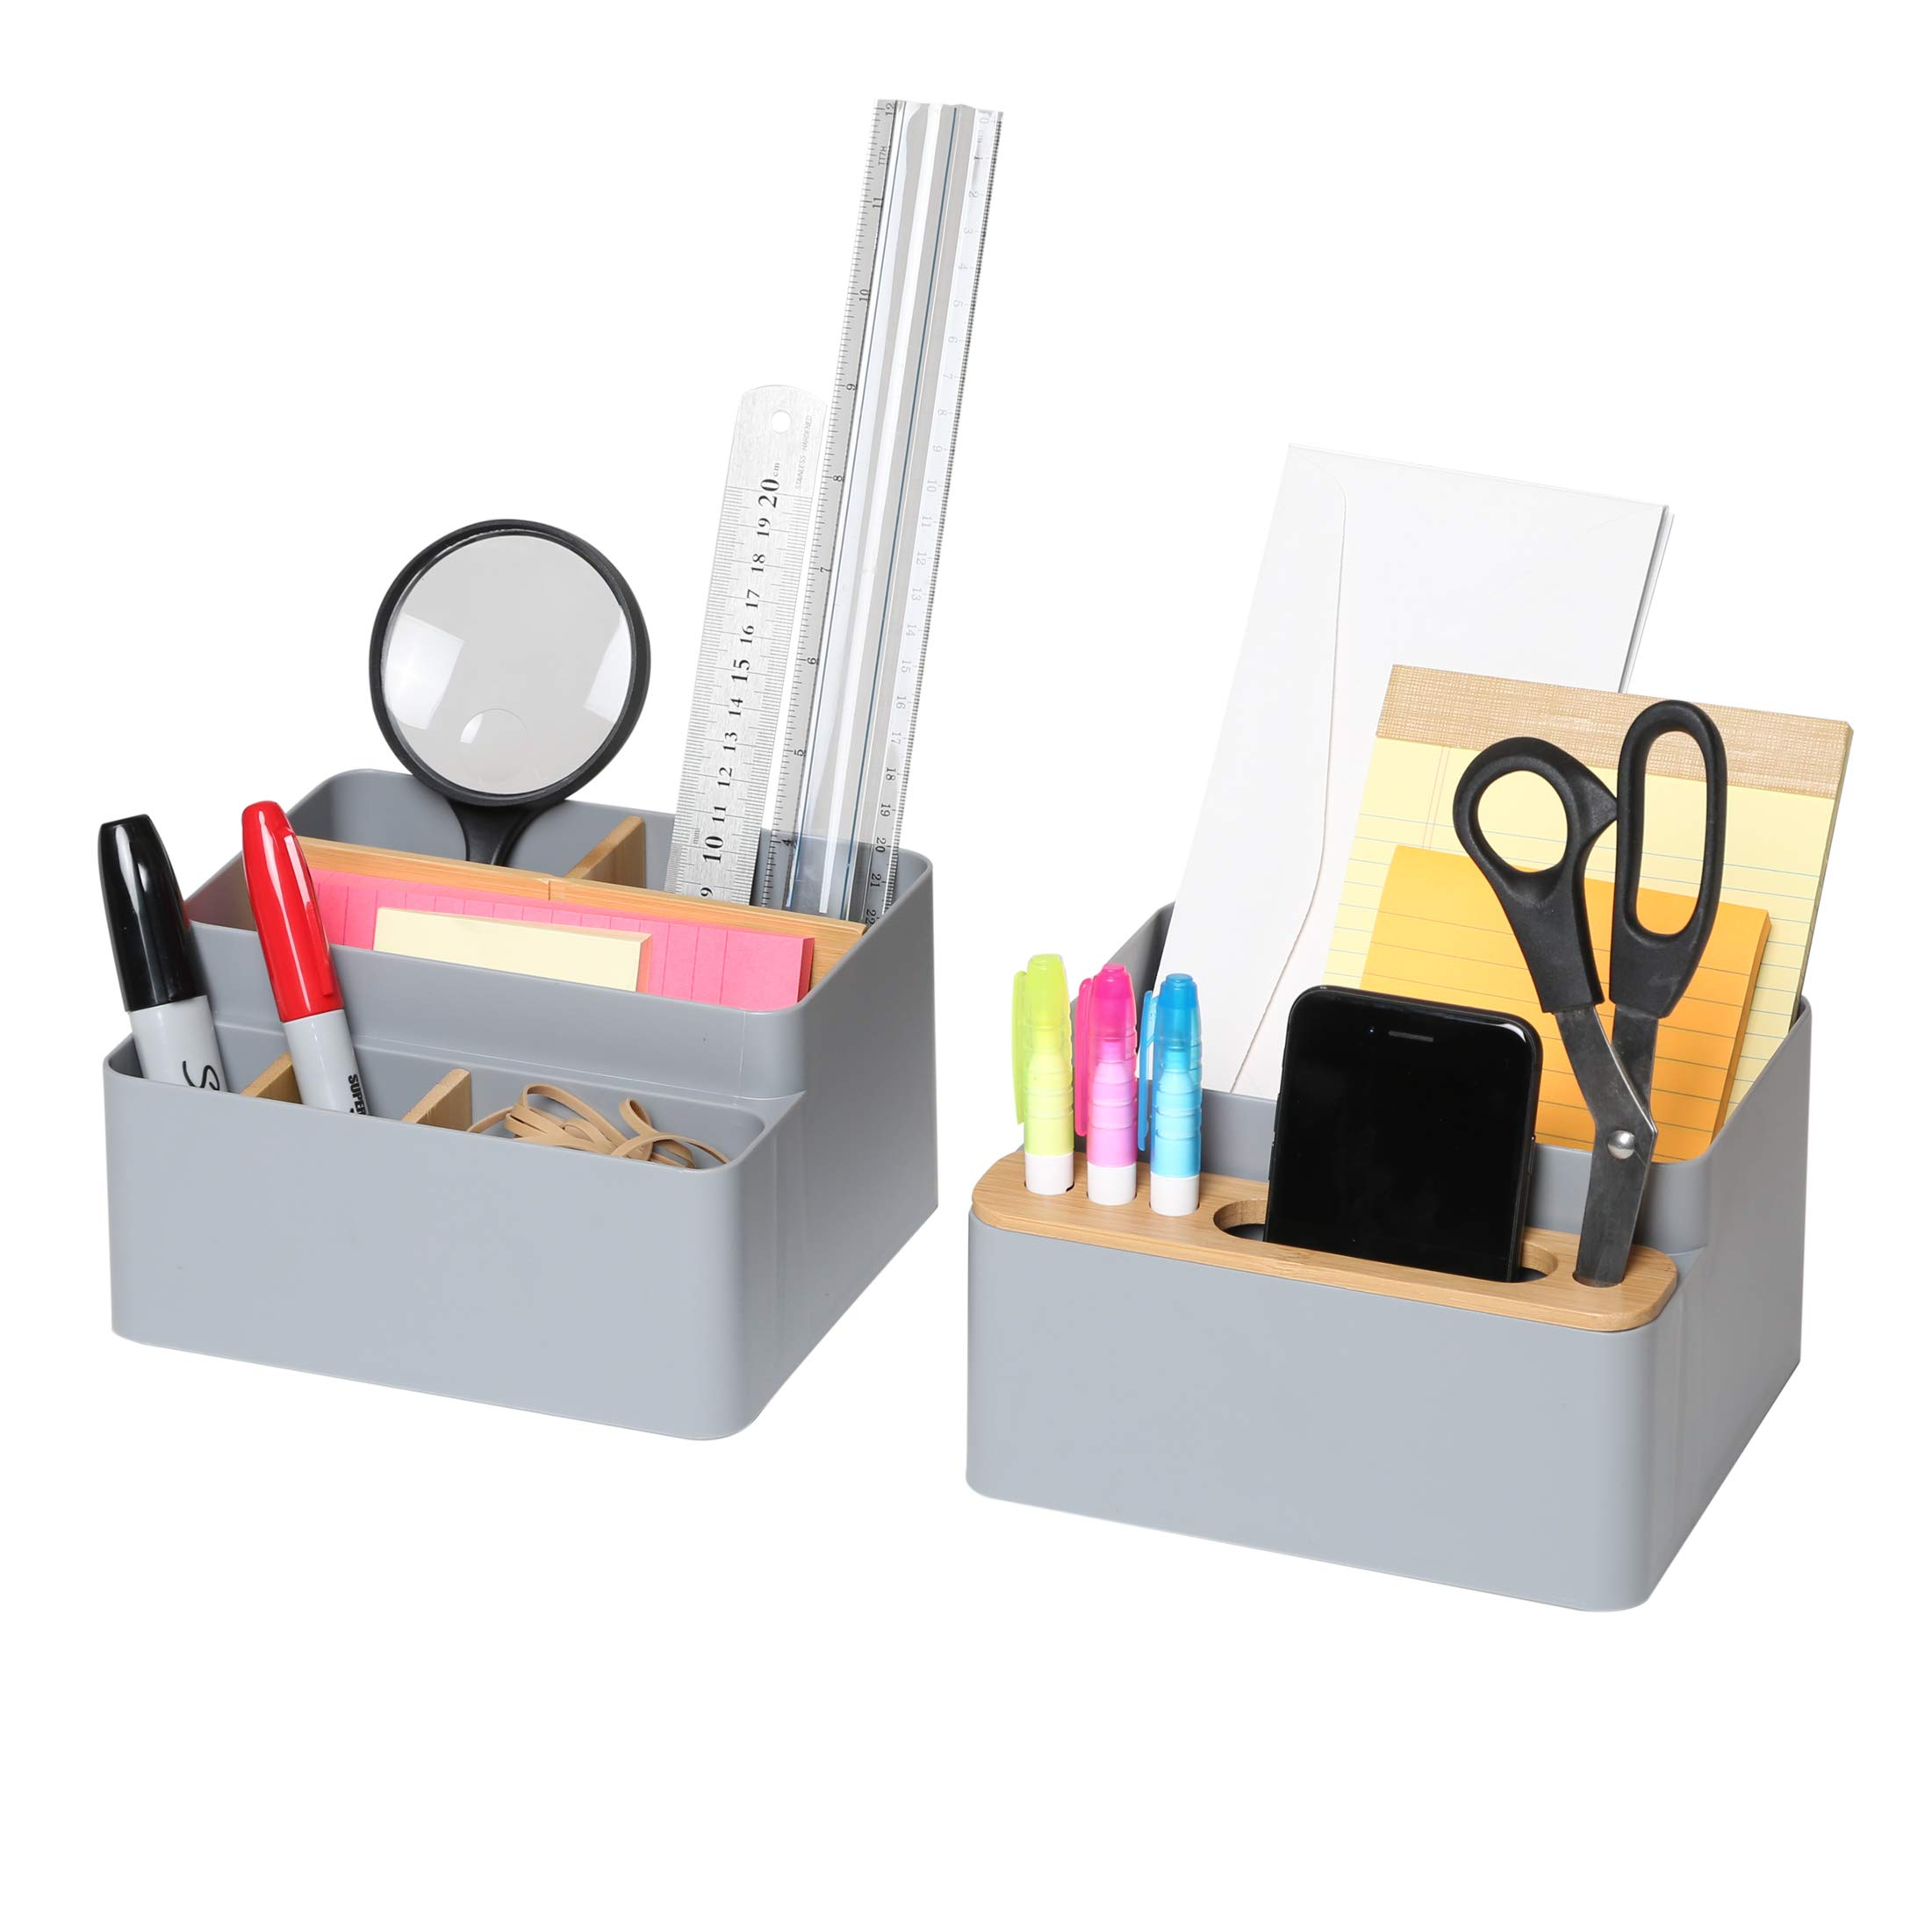 Seville Classics 2-Piece Bamboo Pen & Pencil Caddy Set with Drop-in Dividers 13 Compartment Phone Holder Storage Office Desk Organizer, Gray